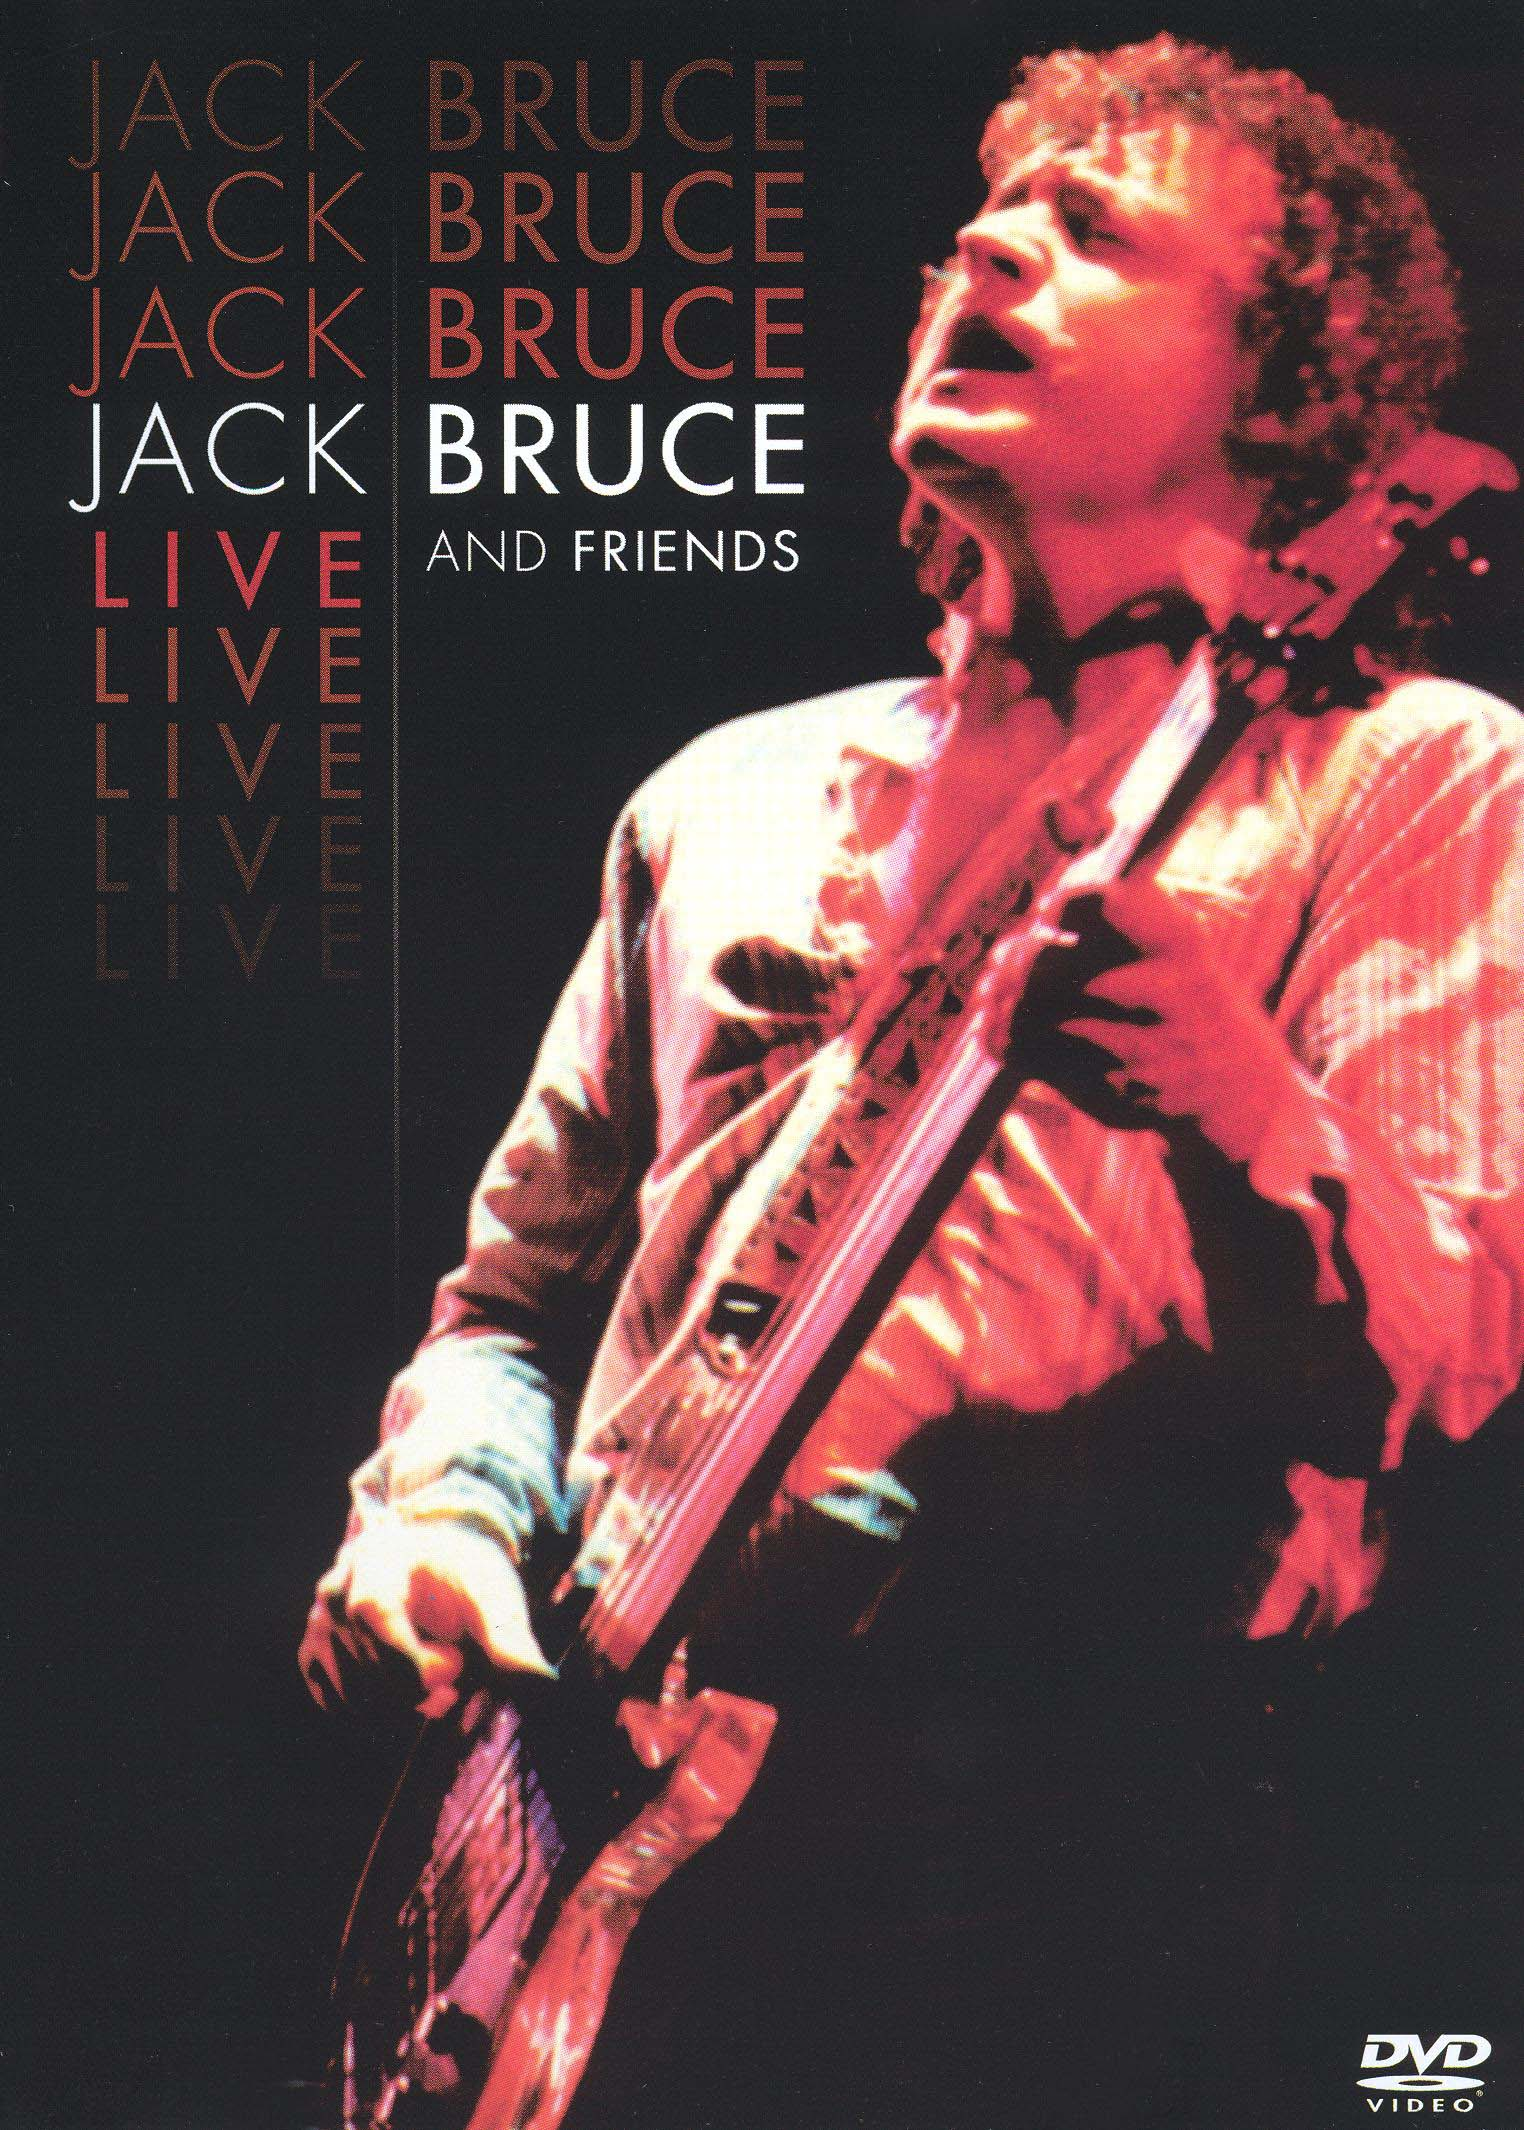 Jack Bruce and Friends: Live